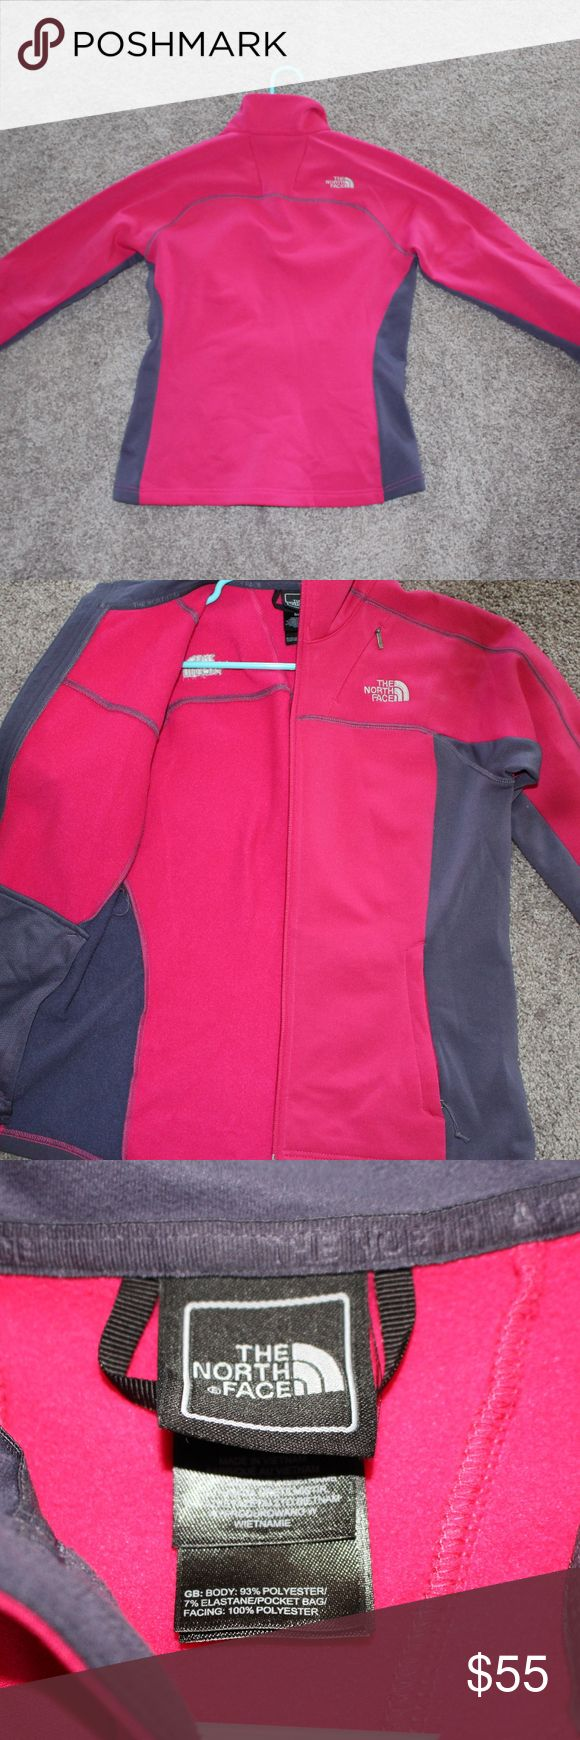 Women's Small North Face jacket This two-toned pink and grey women's north face jacket is in great condition. Only worn a handful of times. I'm selling it because I moved to a warmer climate and don't have a need for this jacket. Very light weight but warm. The North Face Jackets & Coats Utility Jackets